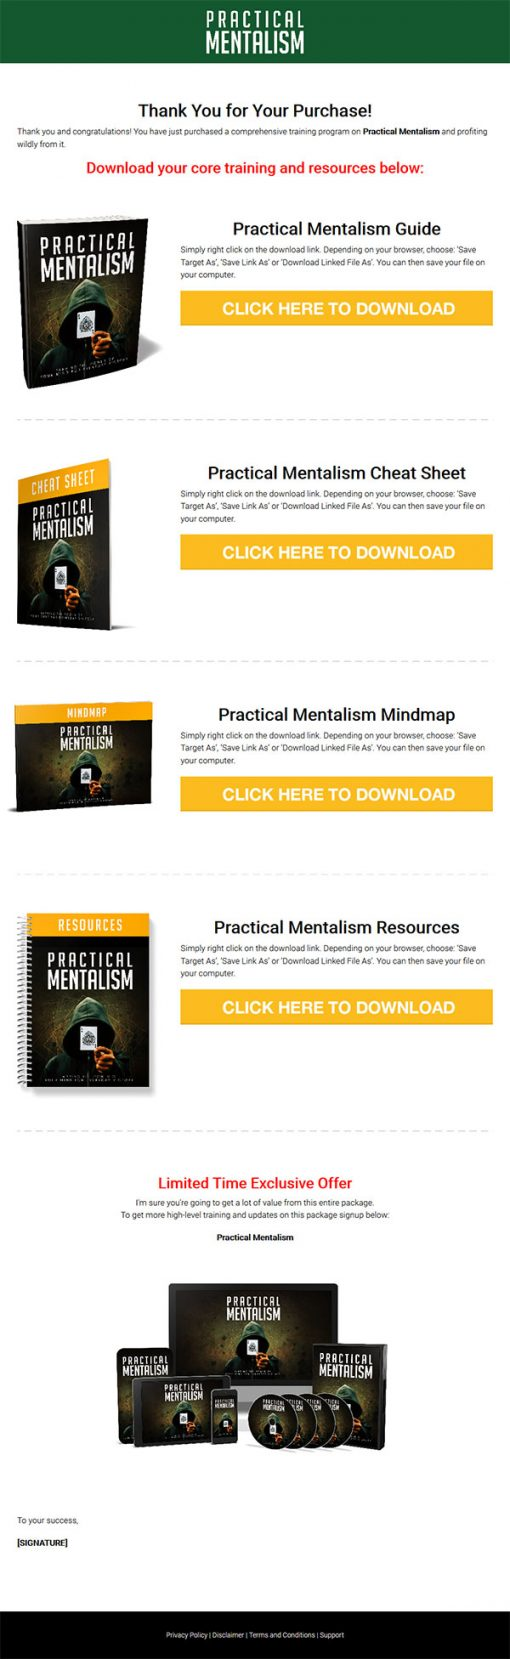 Practical Mentalism Ebook and Videos MRR